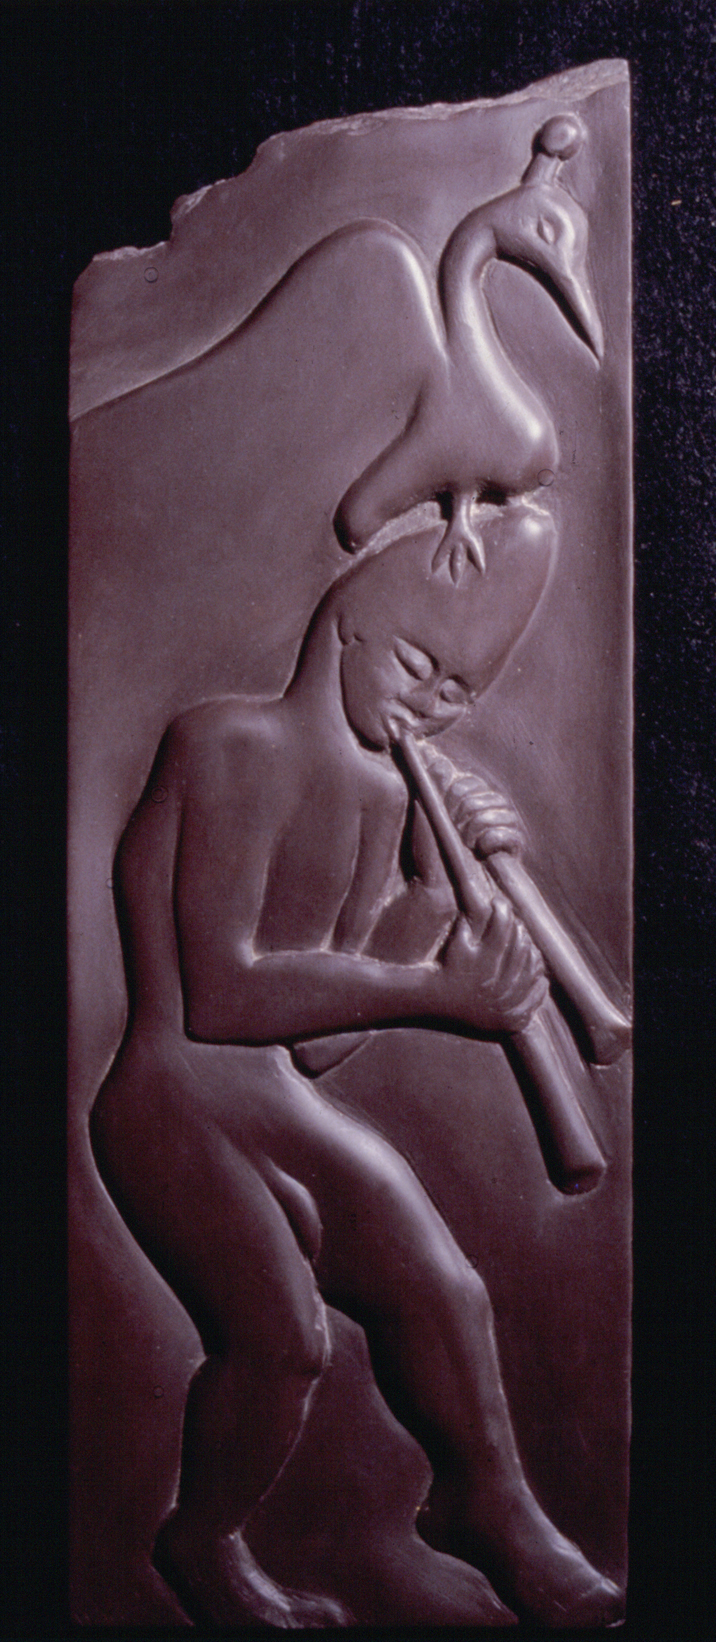 Image of carving on roofing slate of a walking male figure with large bird on his head playing pipes.